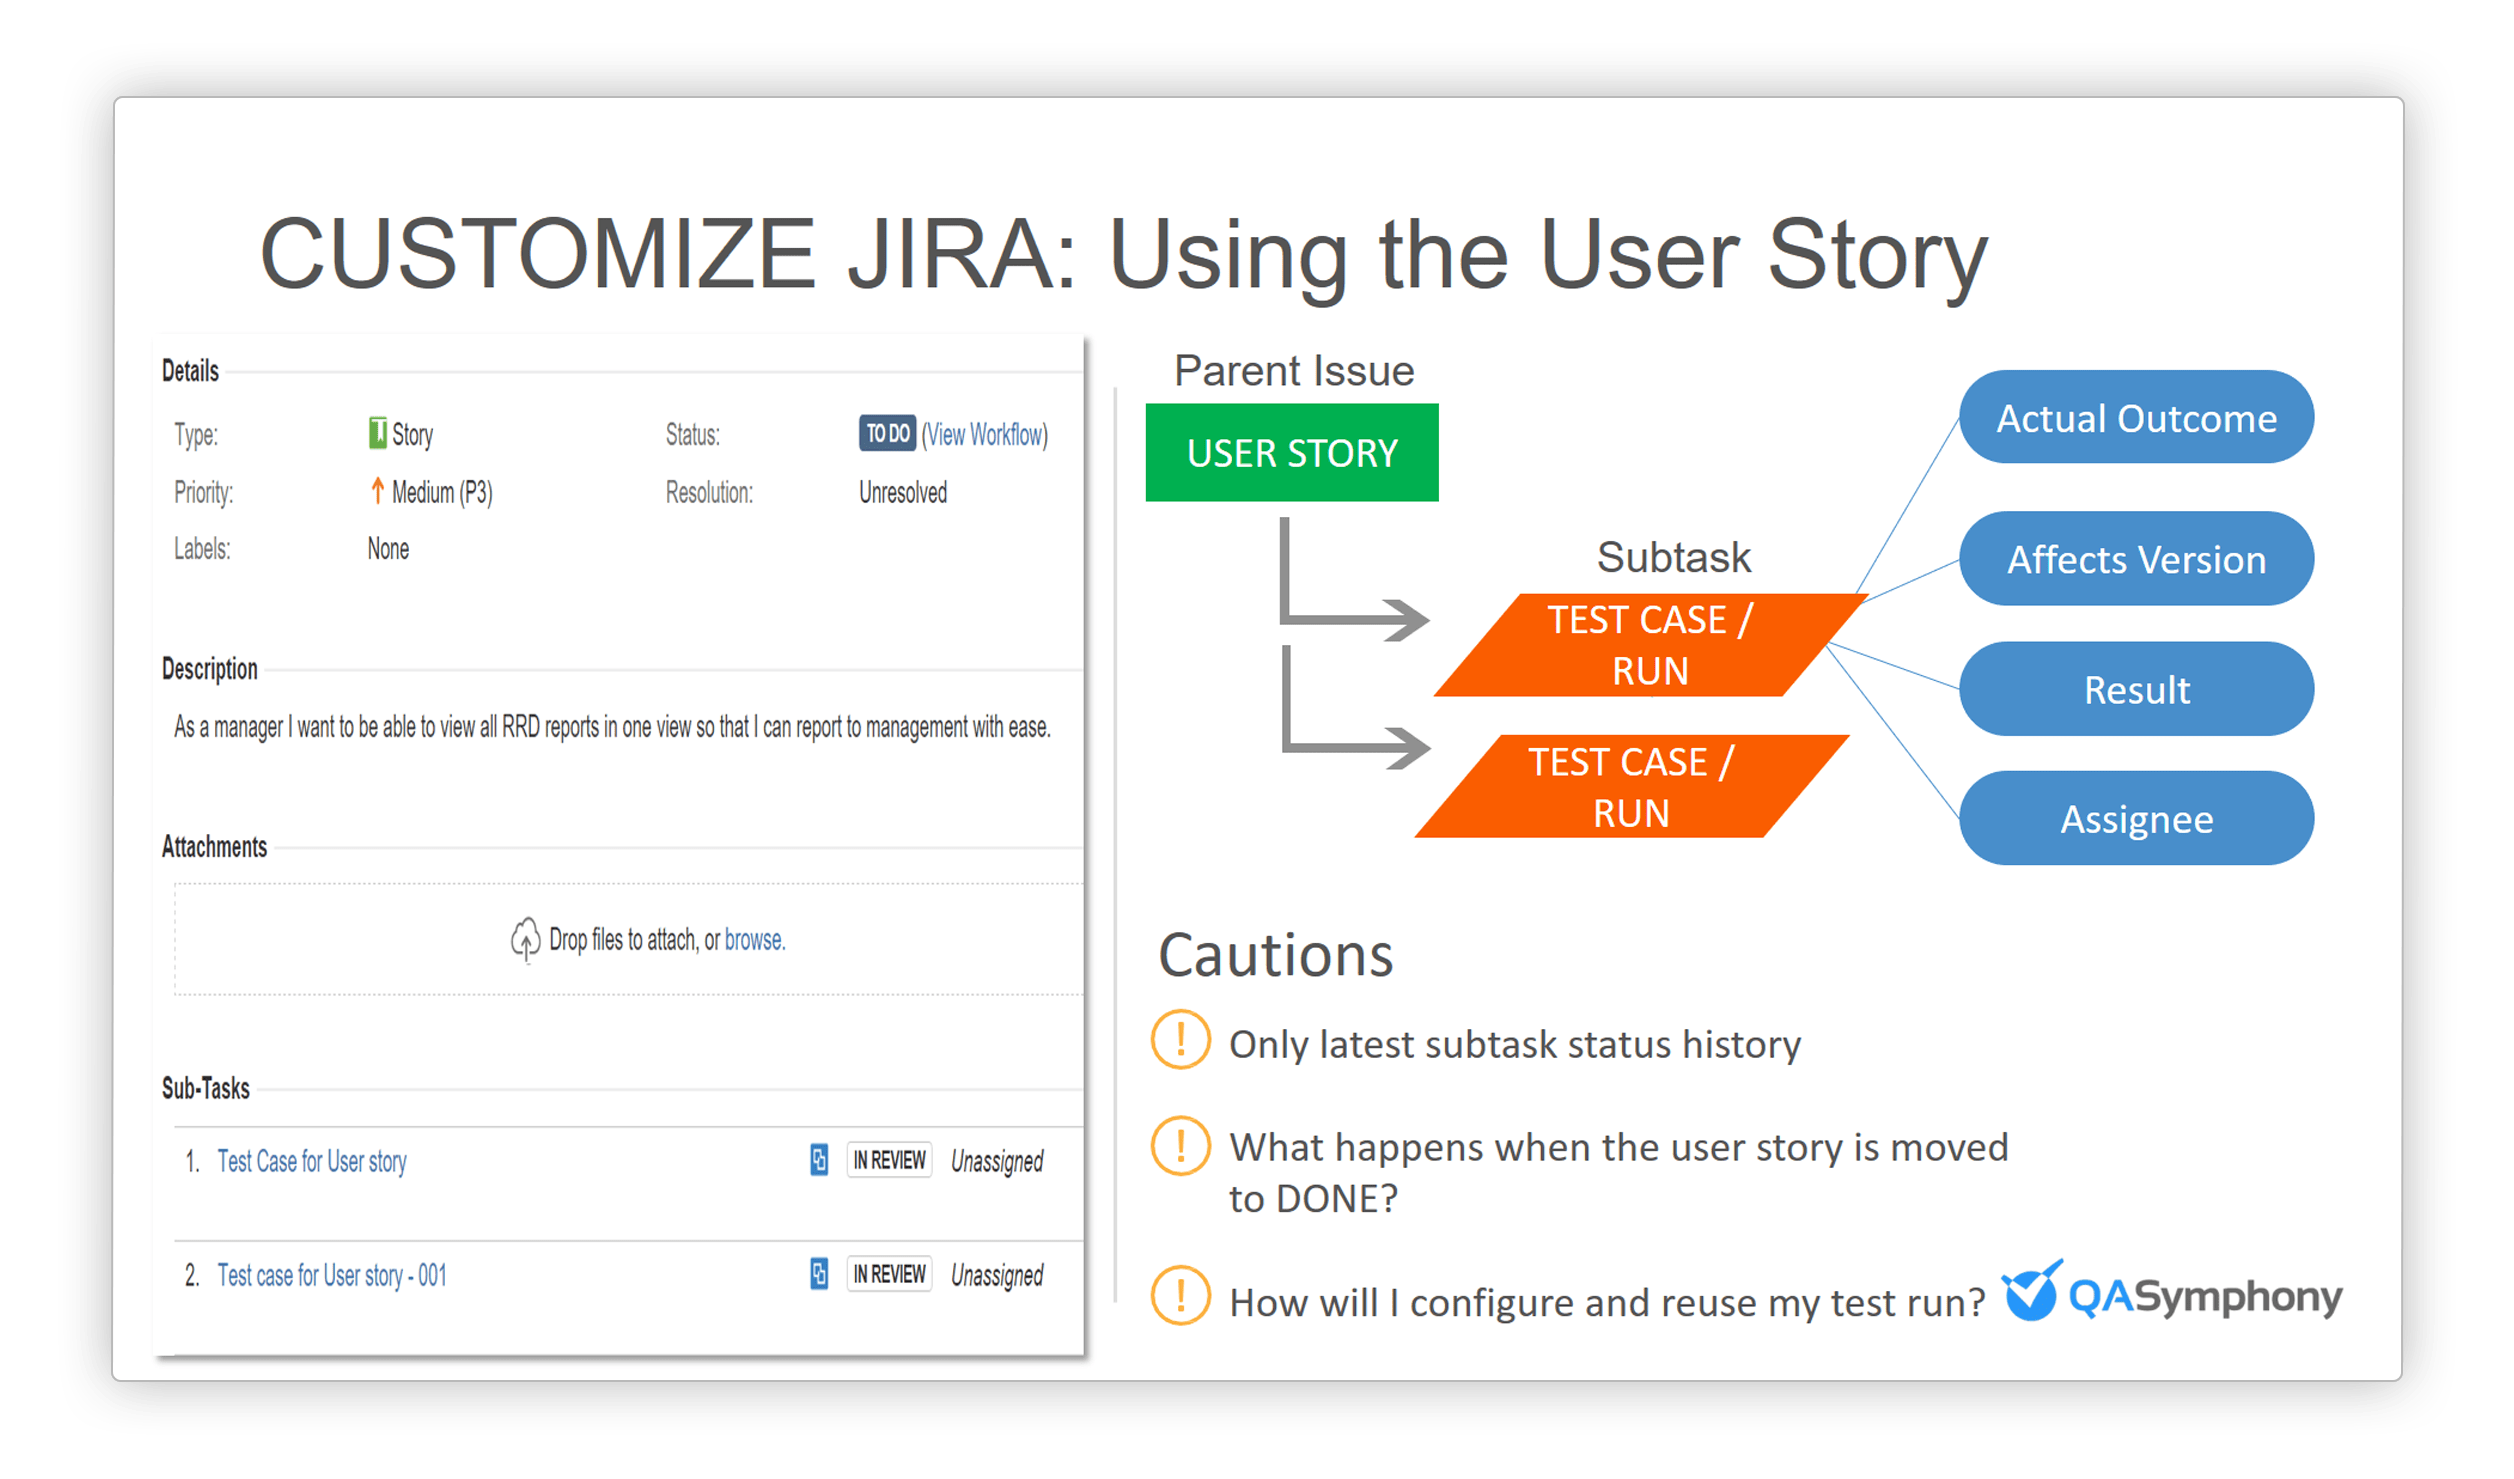 JIRA for Test Management - Customizing Using the User Story